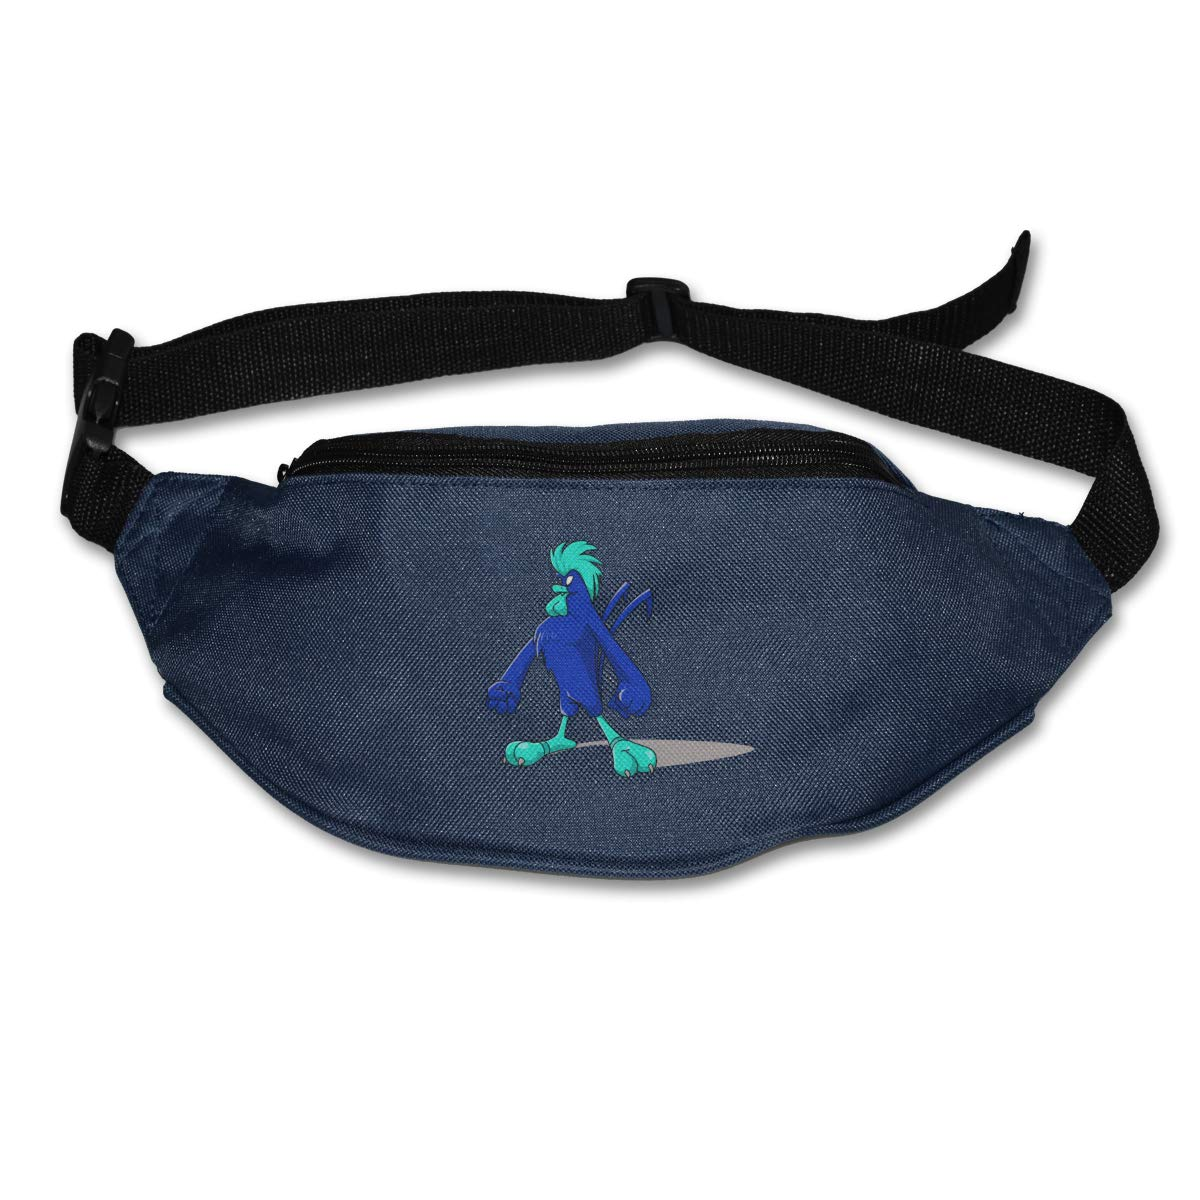 Powerful Blue Rooster Sport Waist Packs Fanny Pack Adjustable For Run